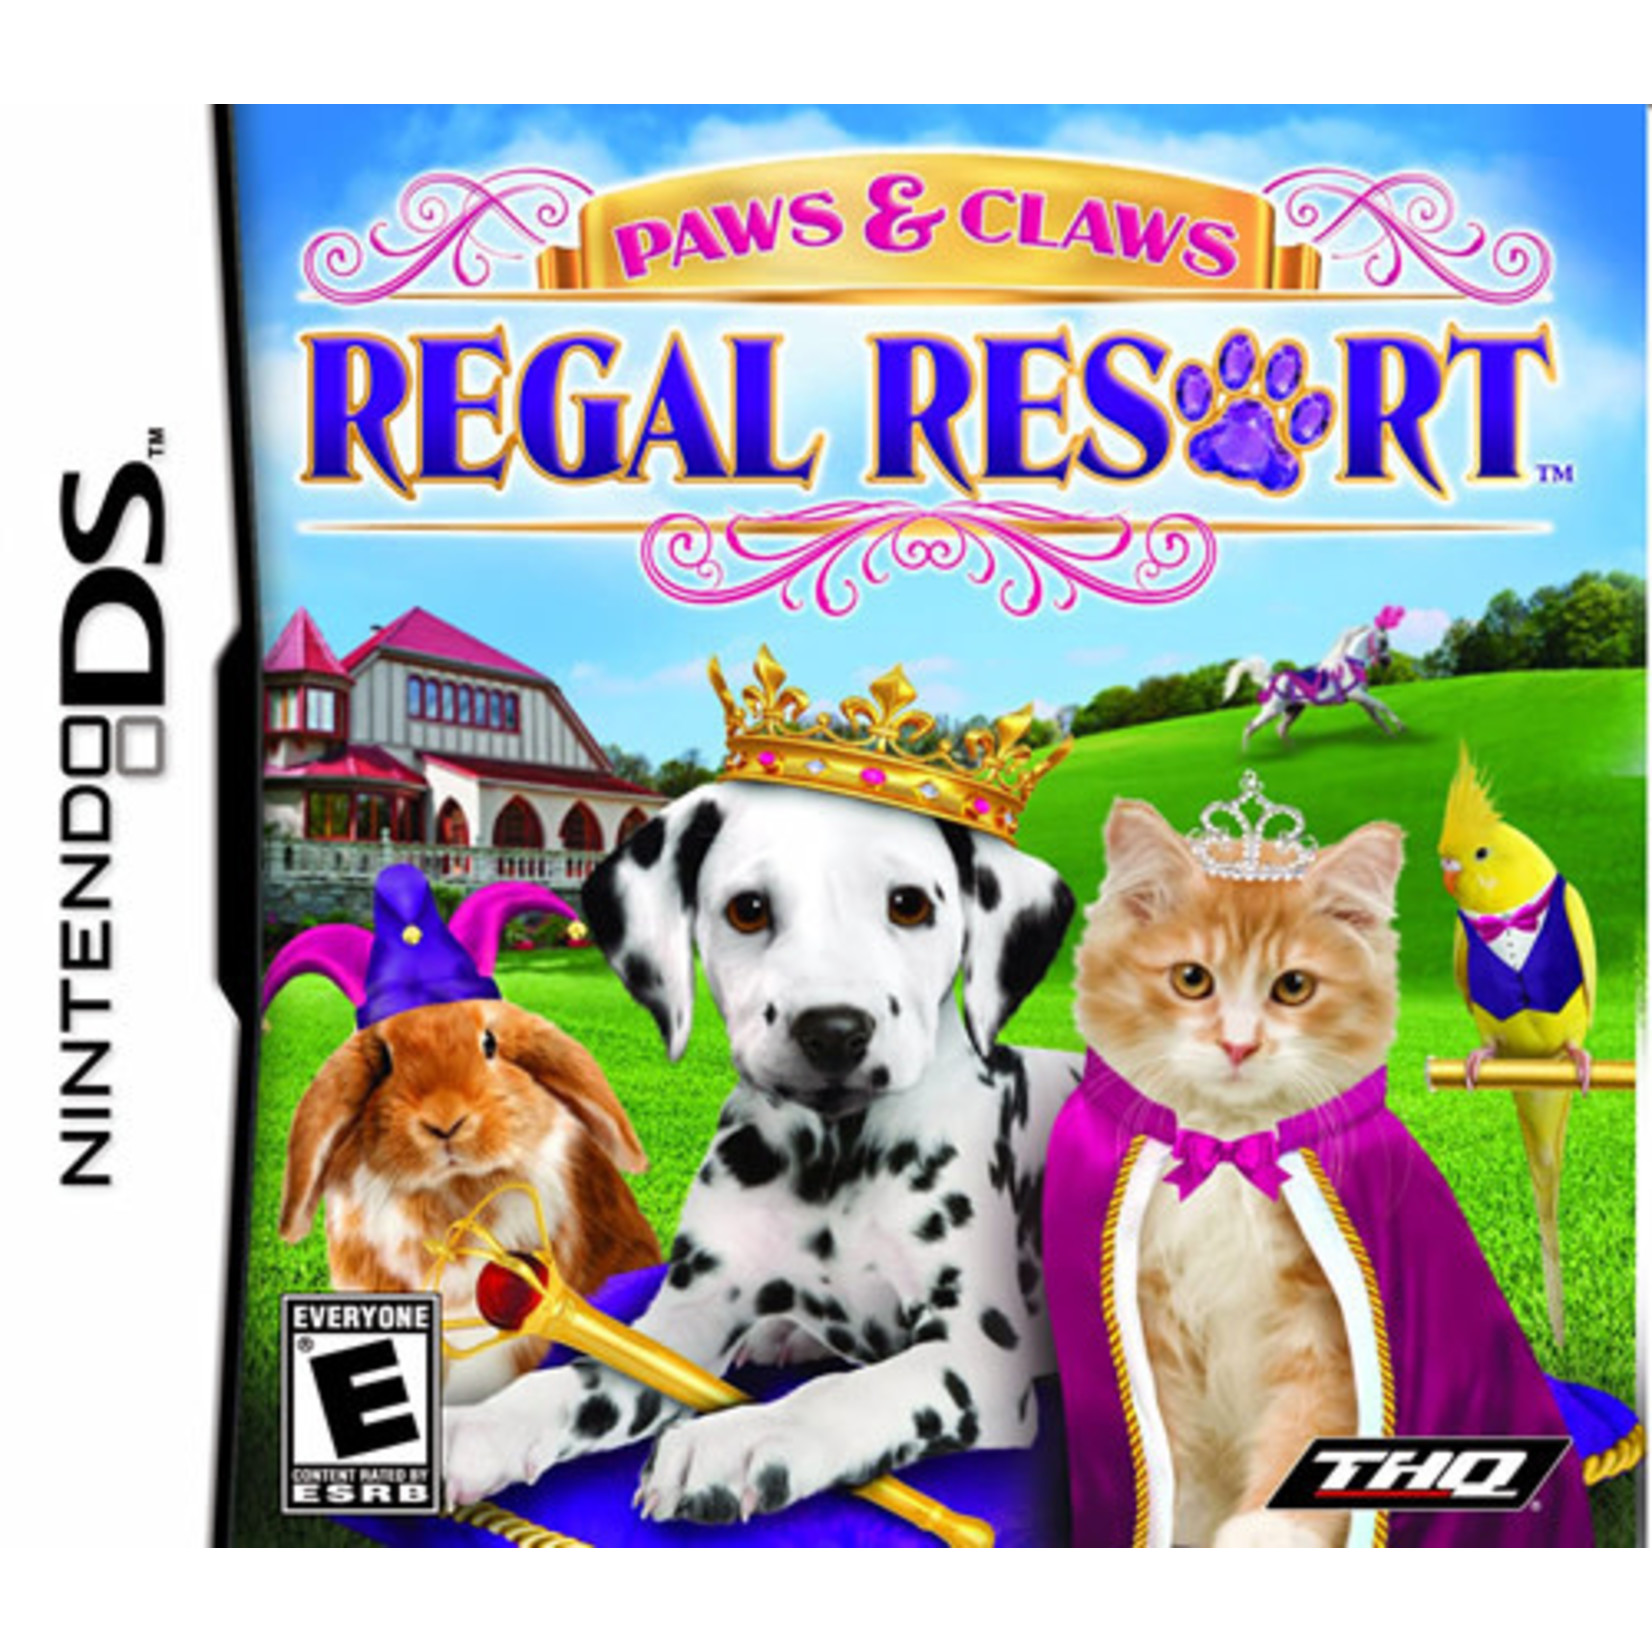 DS-PAWS&CLAWS REGAL RESORT